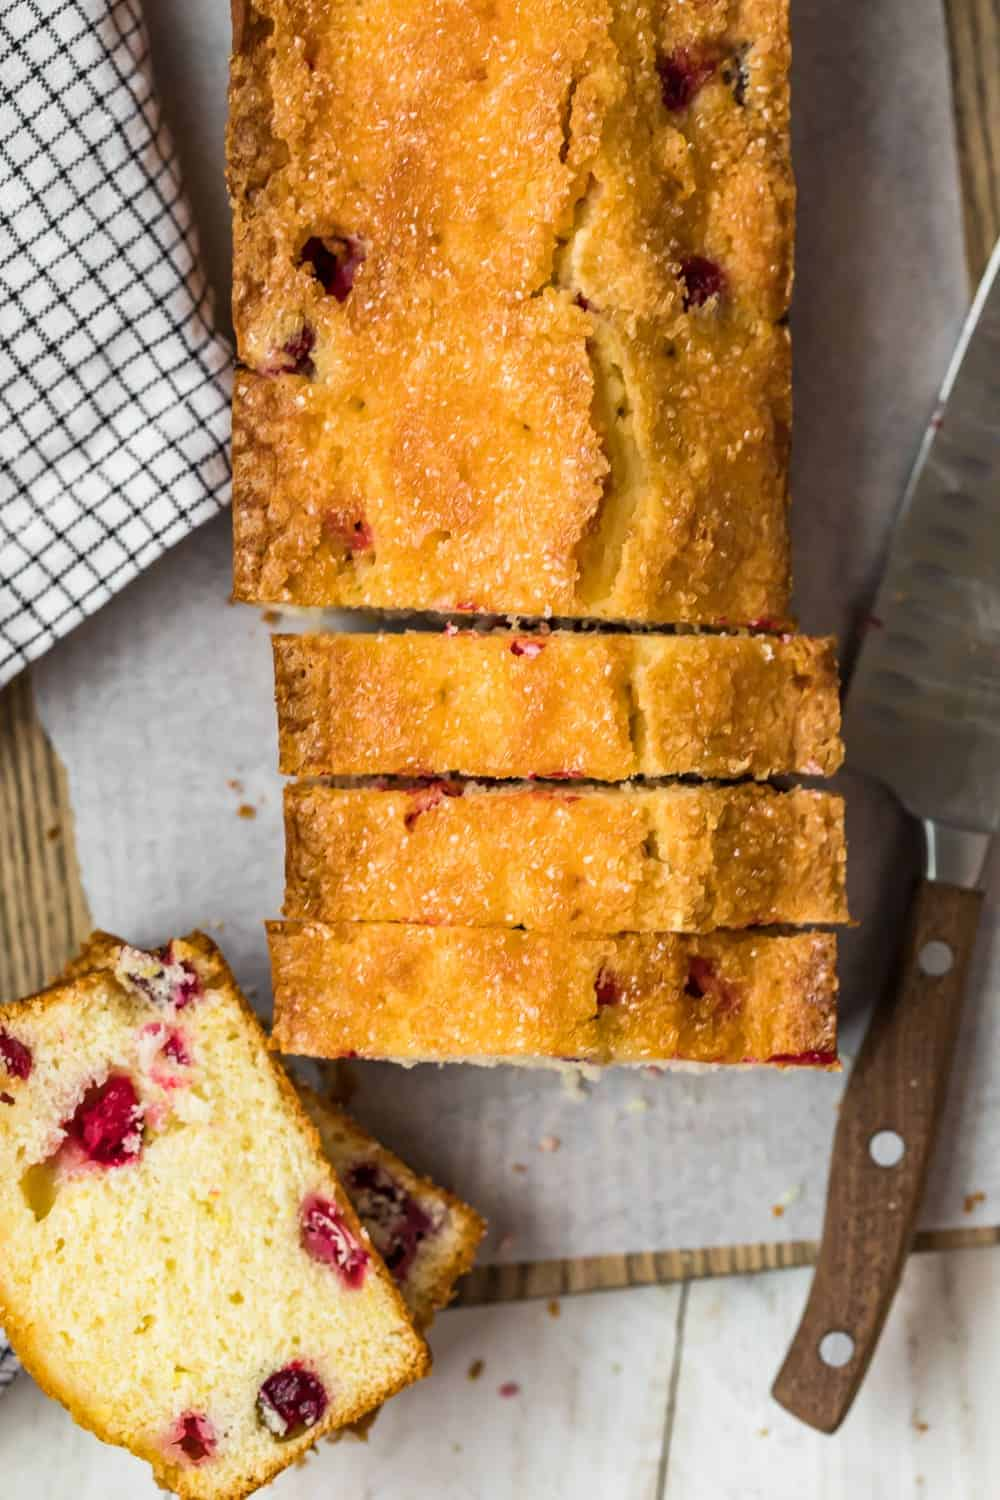 Slices of Glazed Lemon Cranberry Bread